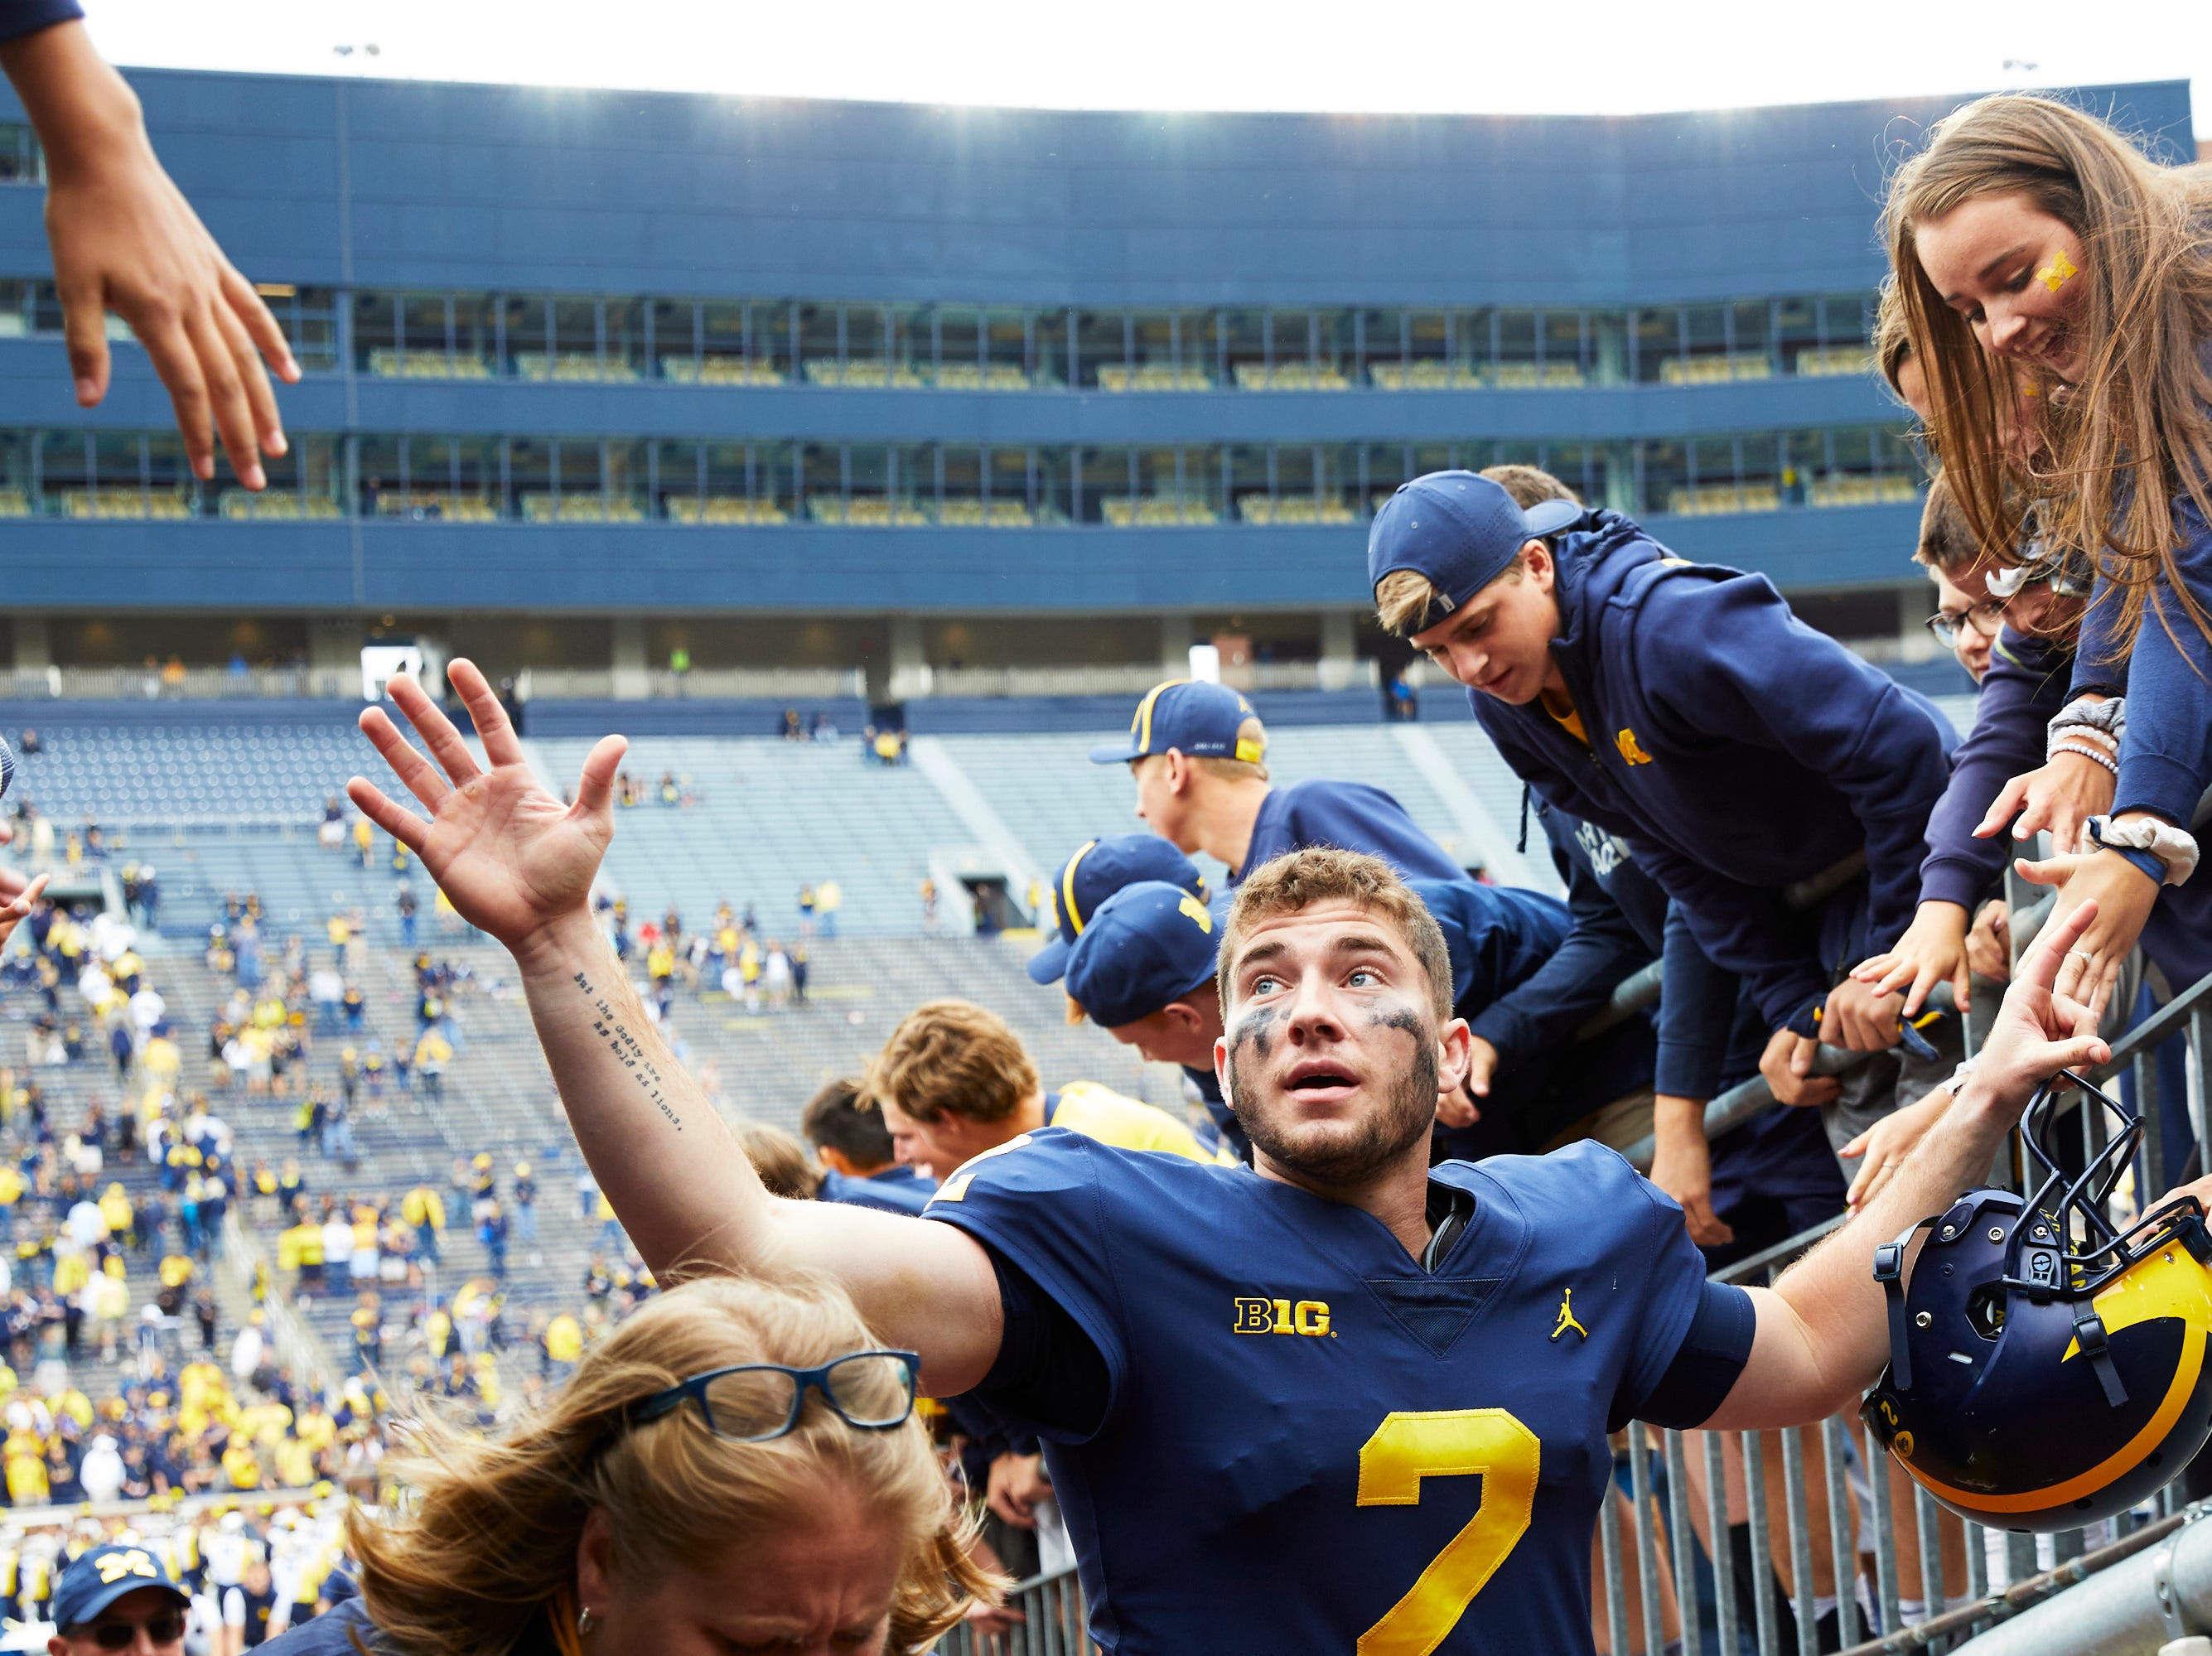 Sep 8, 2018; Ann Arbor, MI, USA; Michigan Wolverines quarterback Shea Patterson (2) meets with fans after the game against the Western Michigan Broncos at Michigan Stadium. Mandatory Credit: Rick Osentoski-USA TODAY Sports